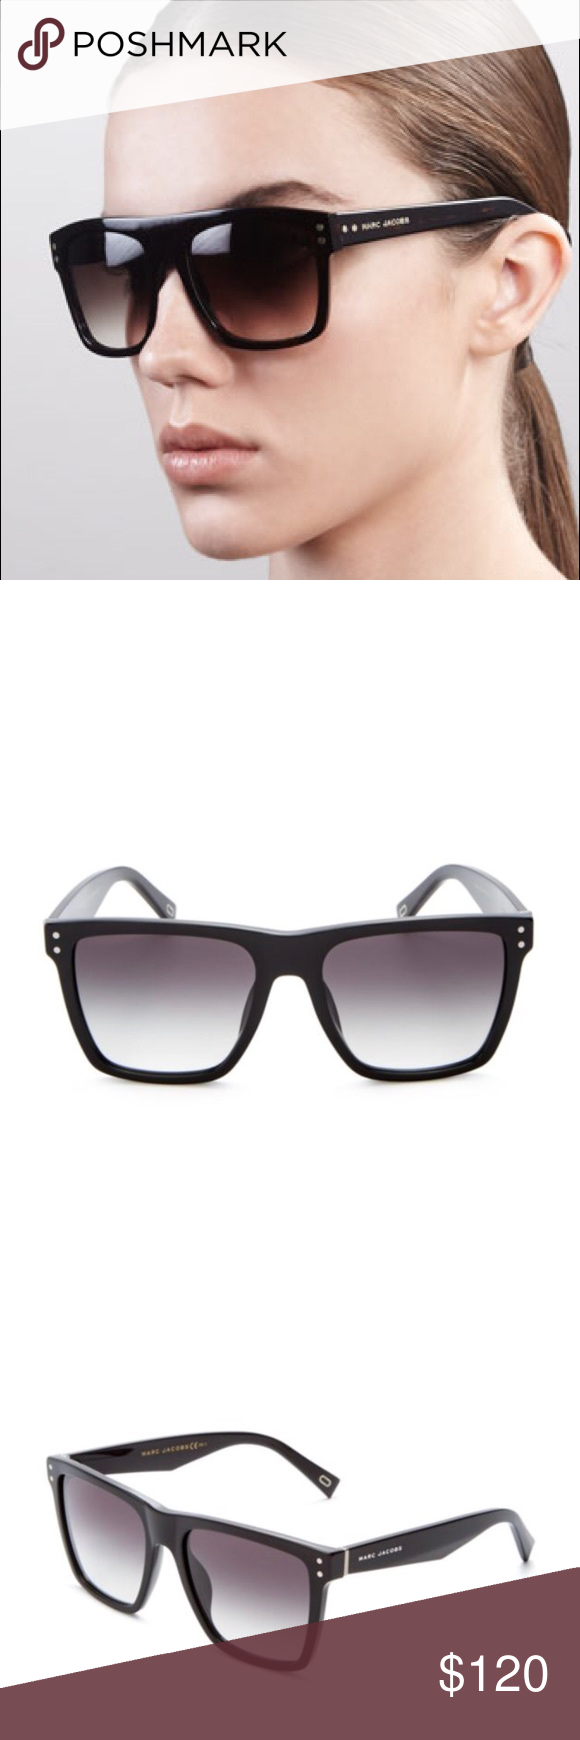 6630c9d414 New Marc Jacobs Flat Top Square Sunnies 58mm Flat-top Marc Jacobs sunglasses  with glossy